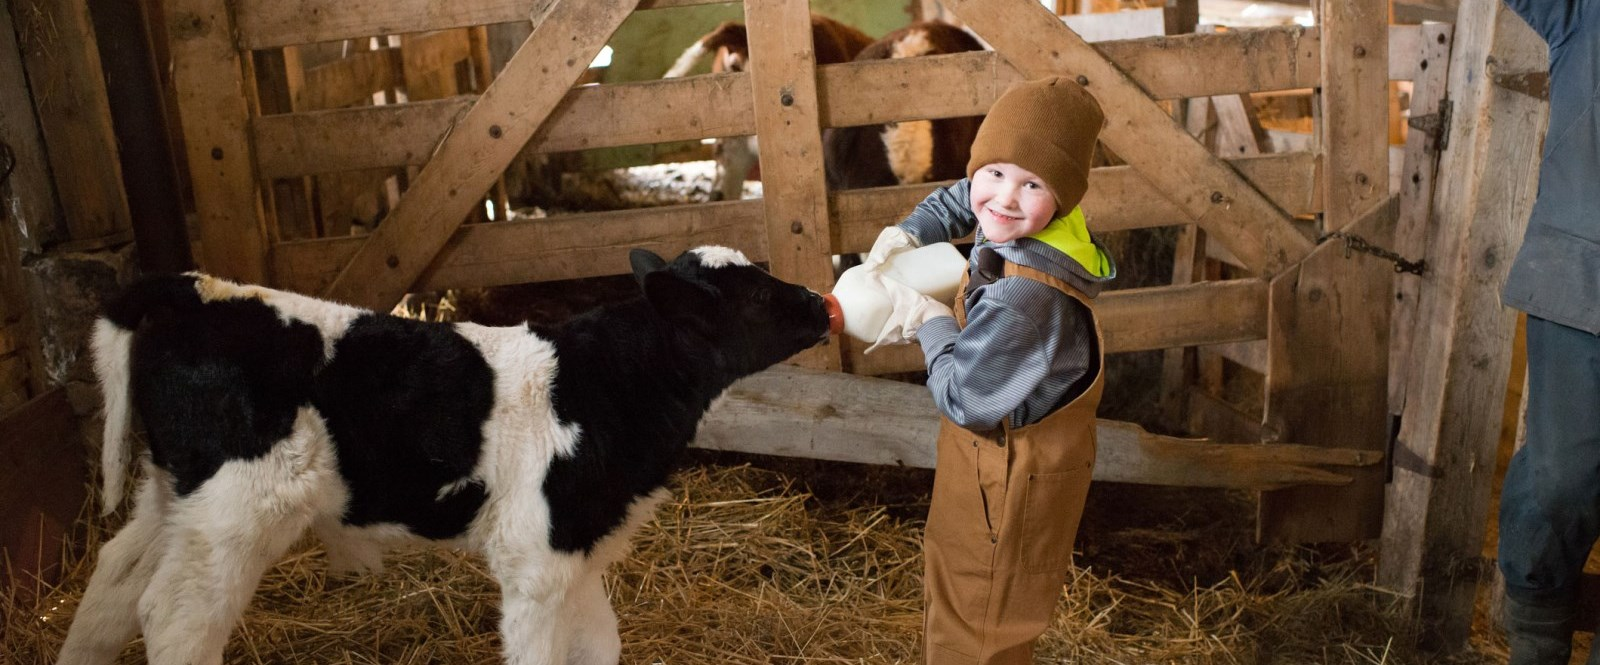 boy feeding calf a bottle of milk